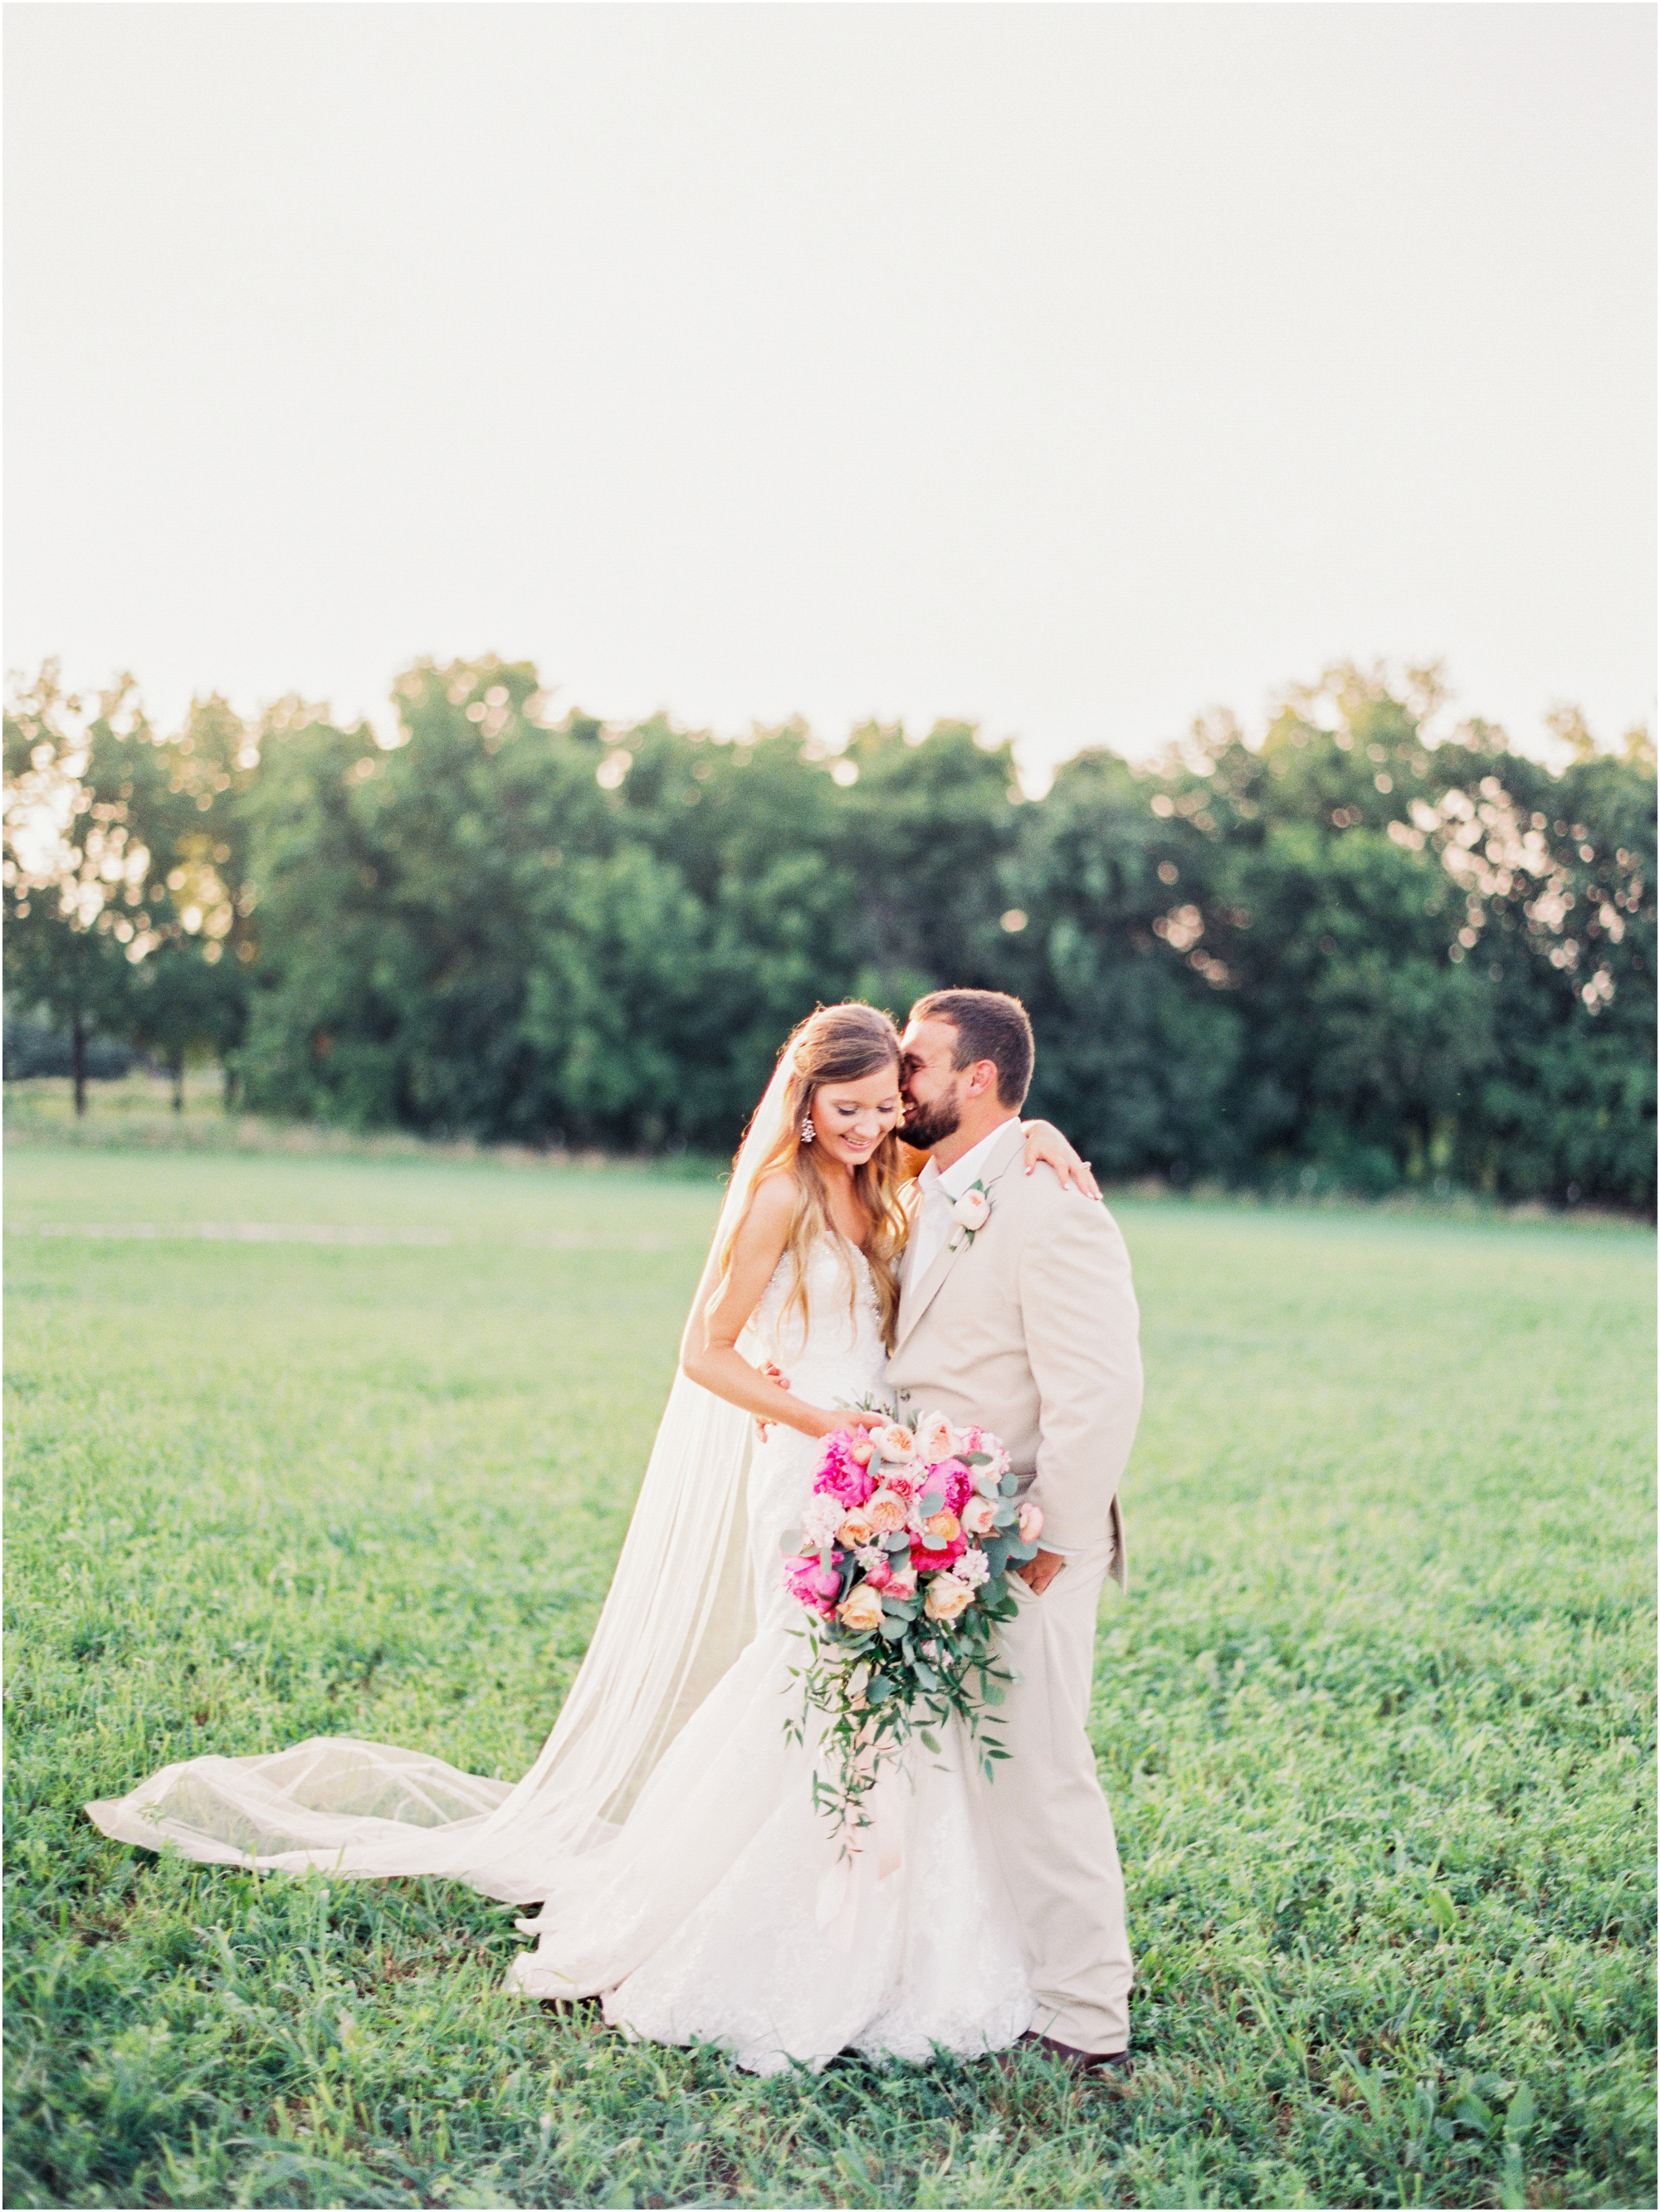 The Barn at Stonevalley Plantation Wedding Pleasant Hope, MO by Jordan Brittley Photography